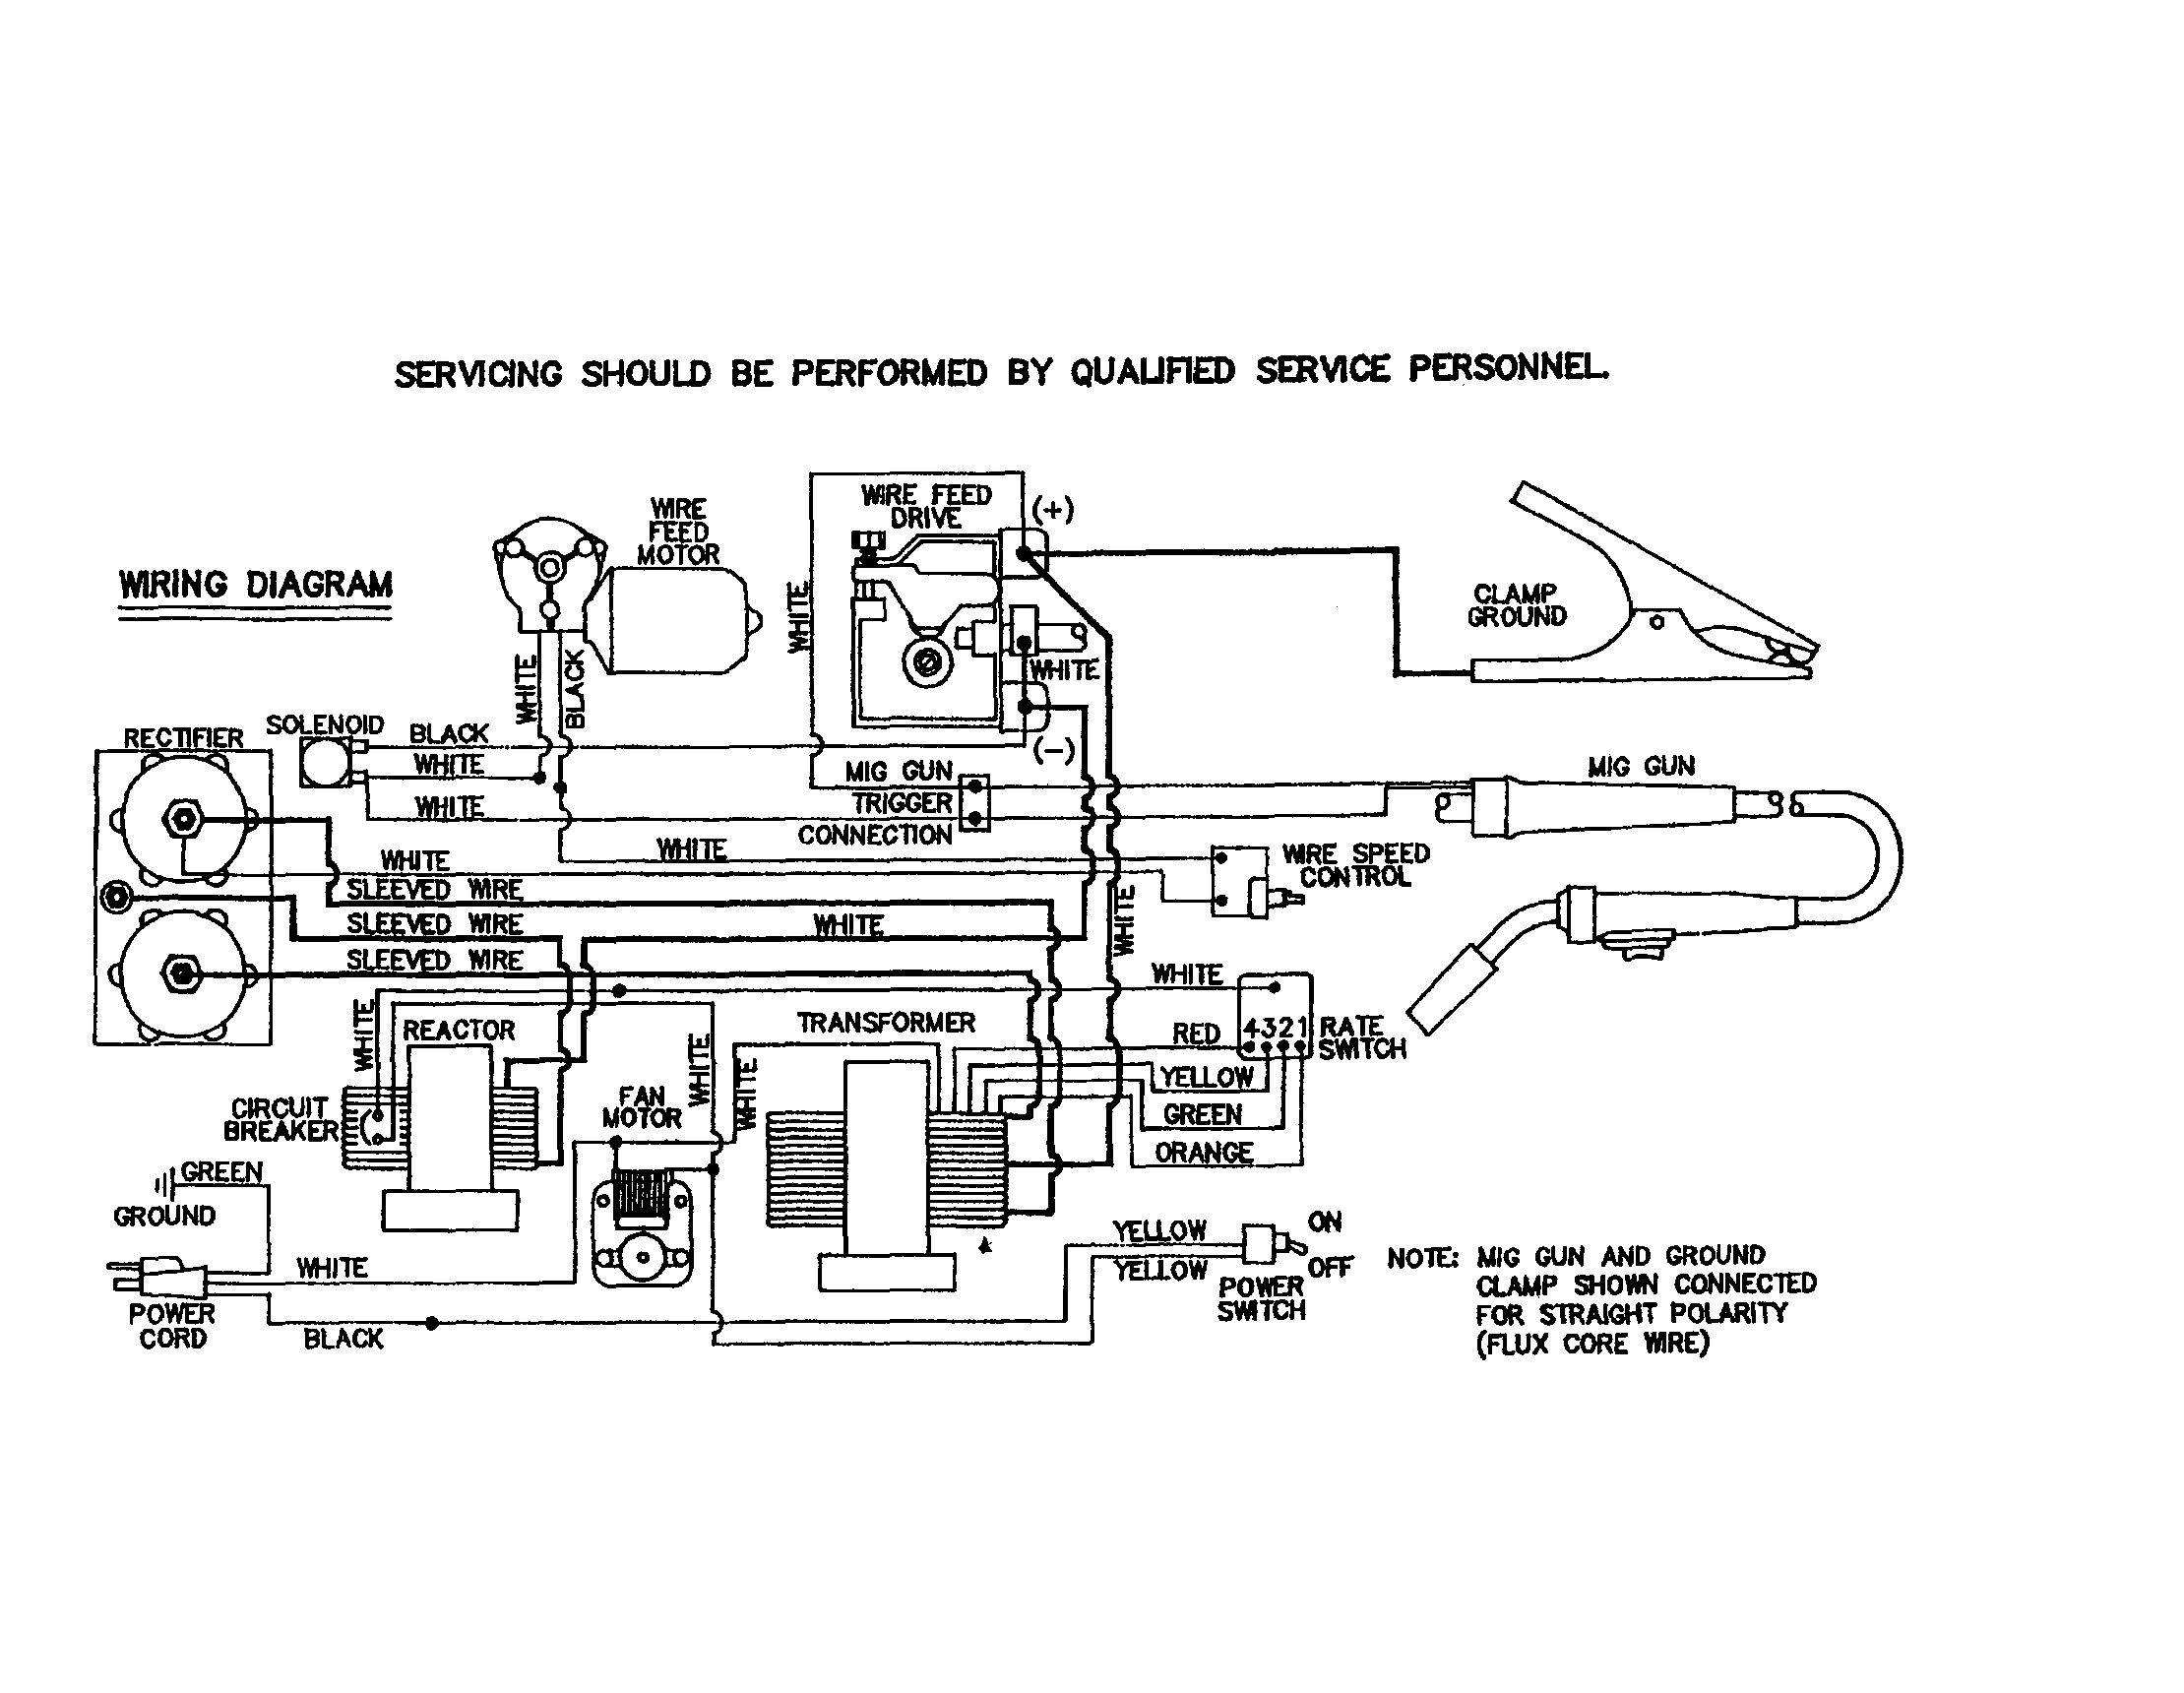 50 amp welder wiring diagram